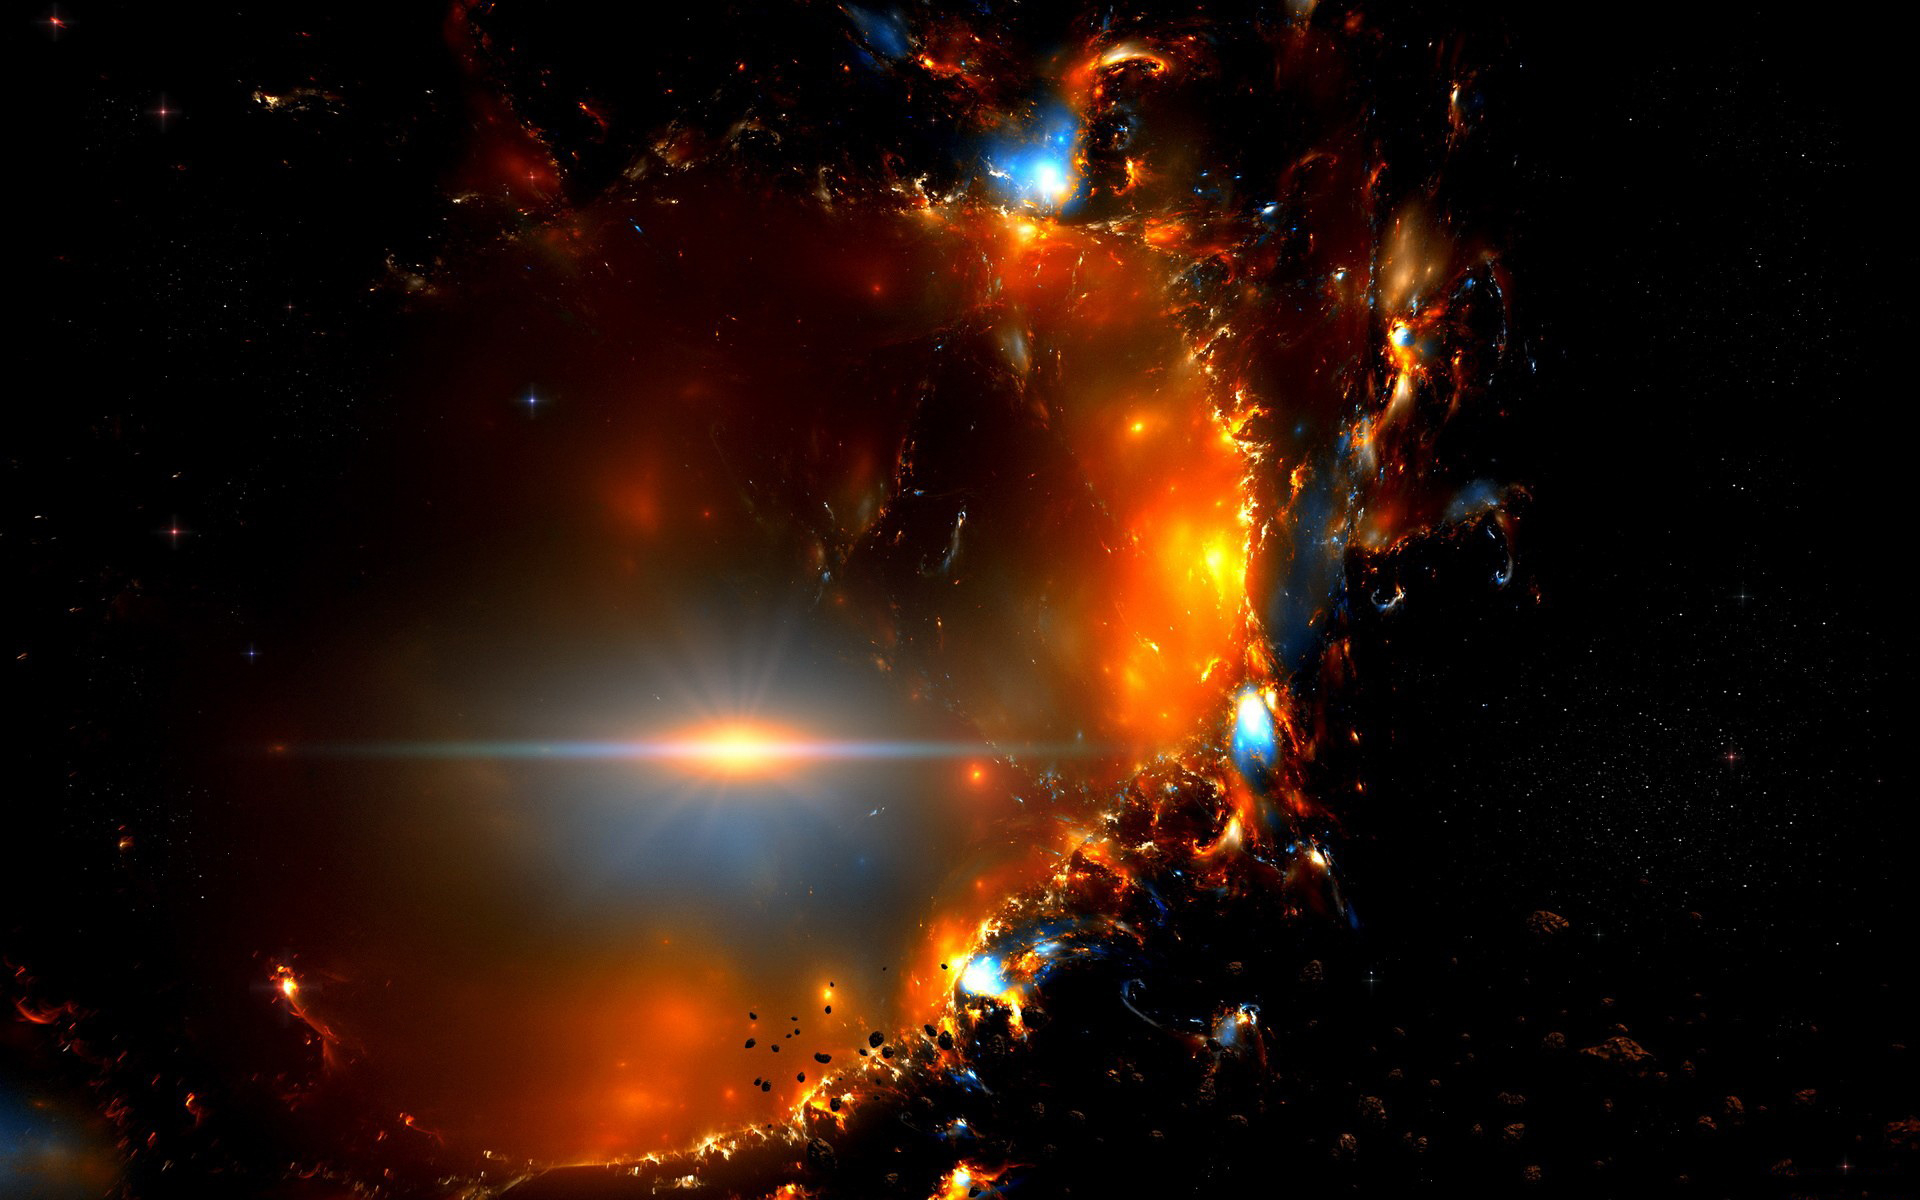 space images digital galaxies hd wallpaper and background photos